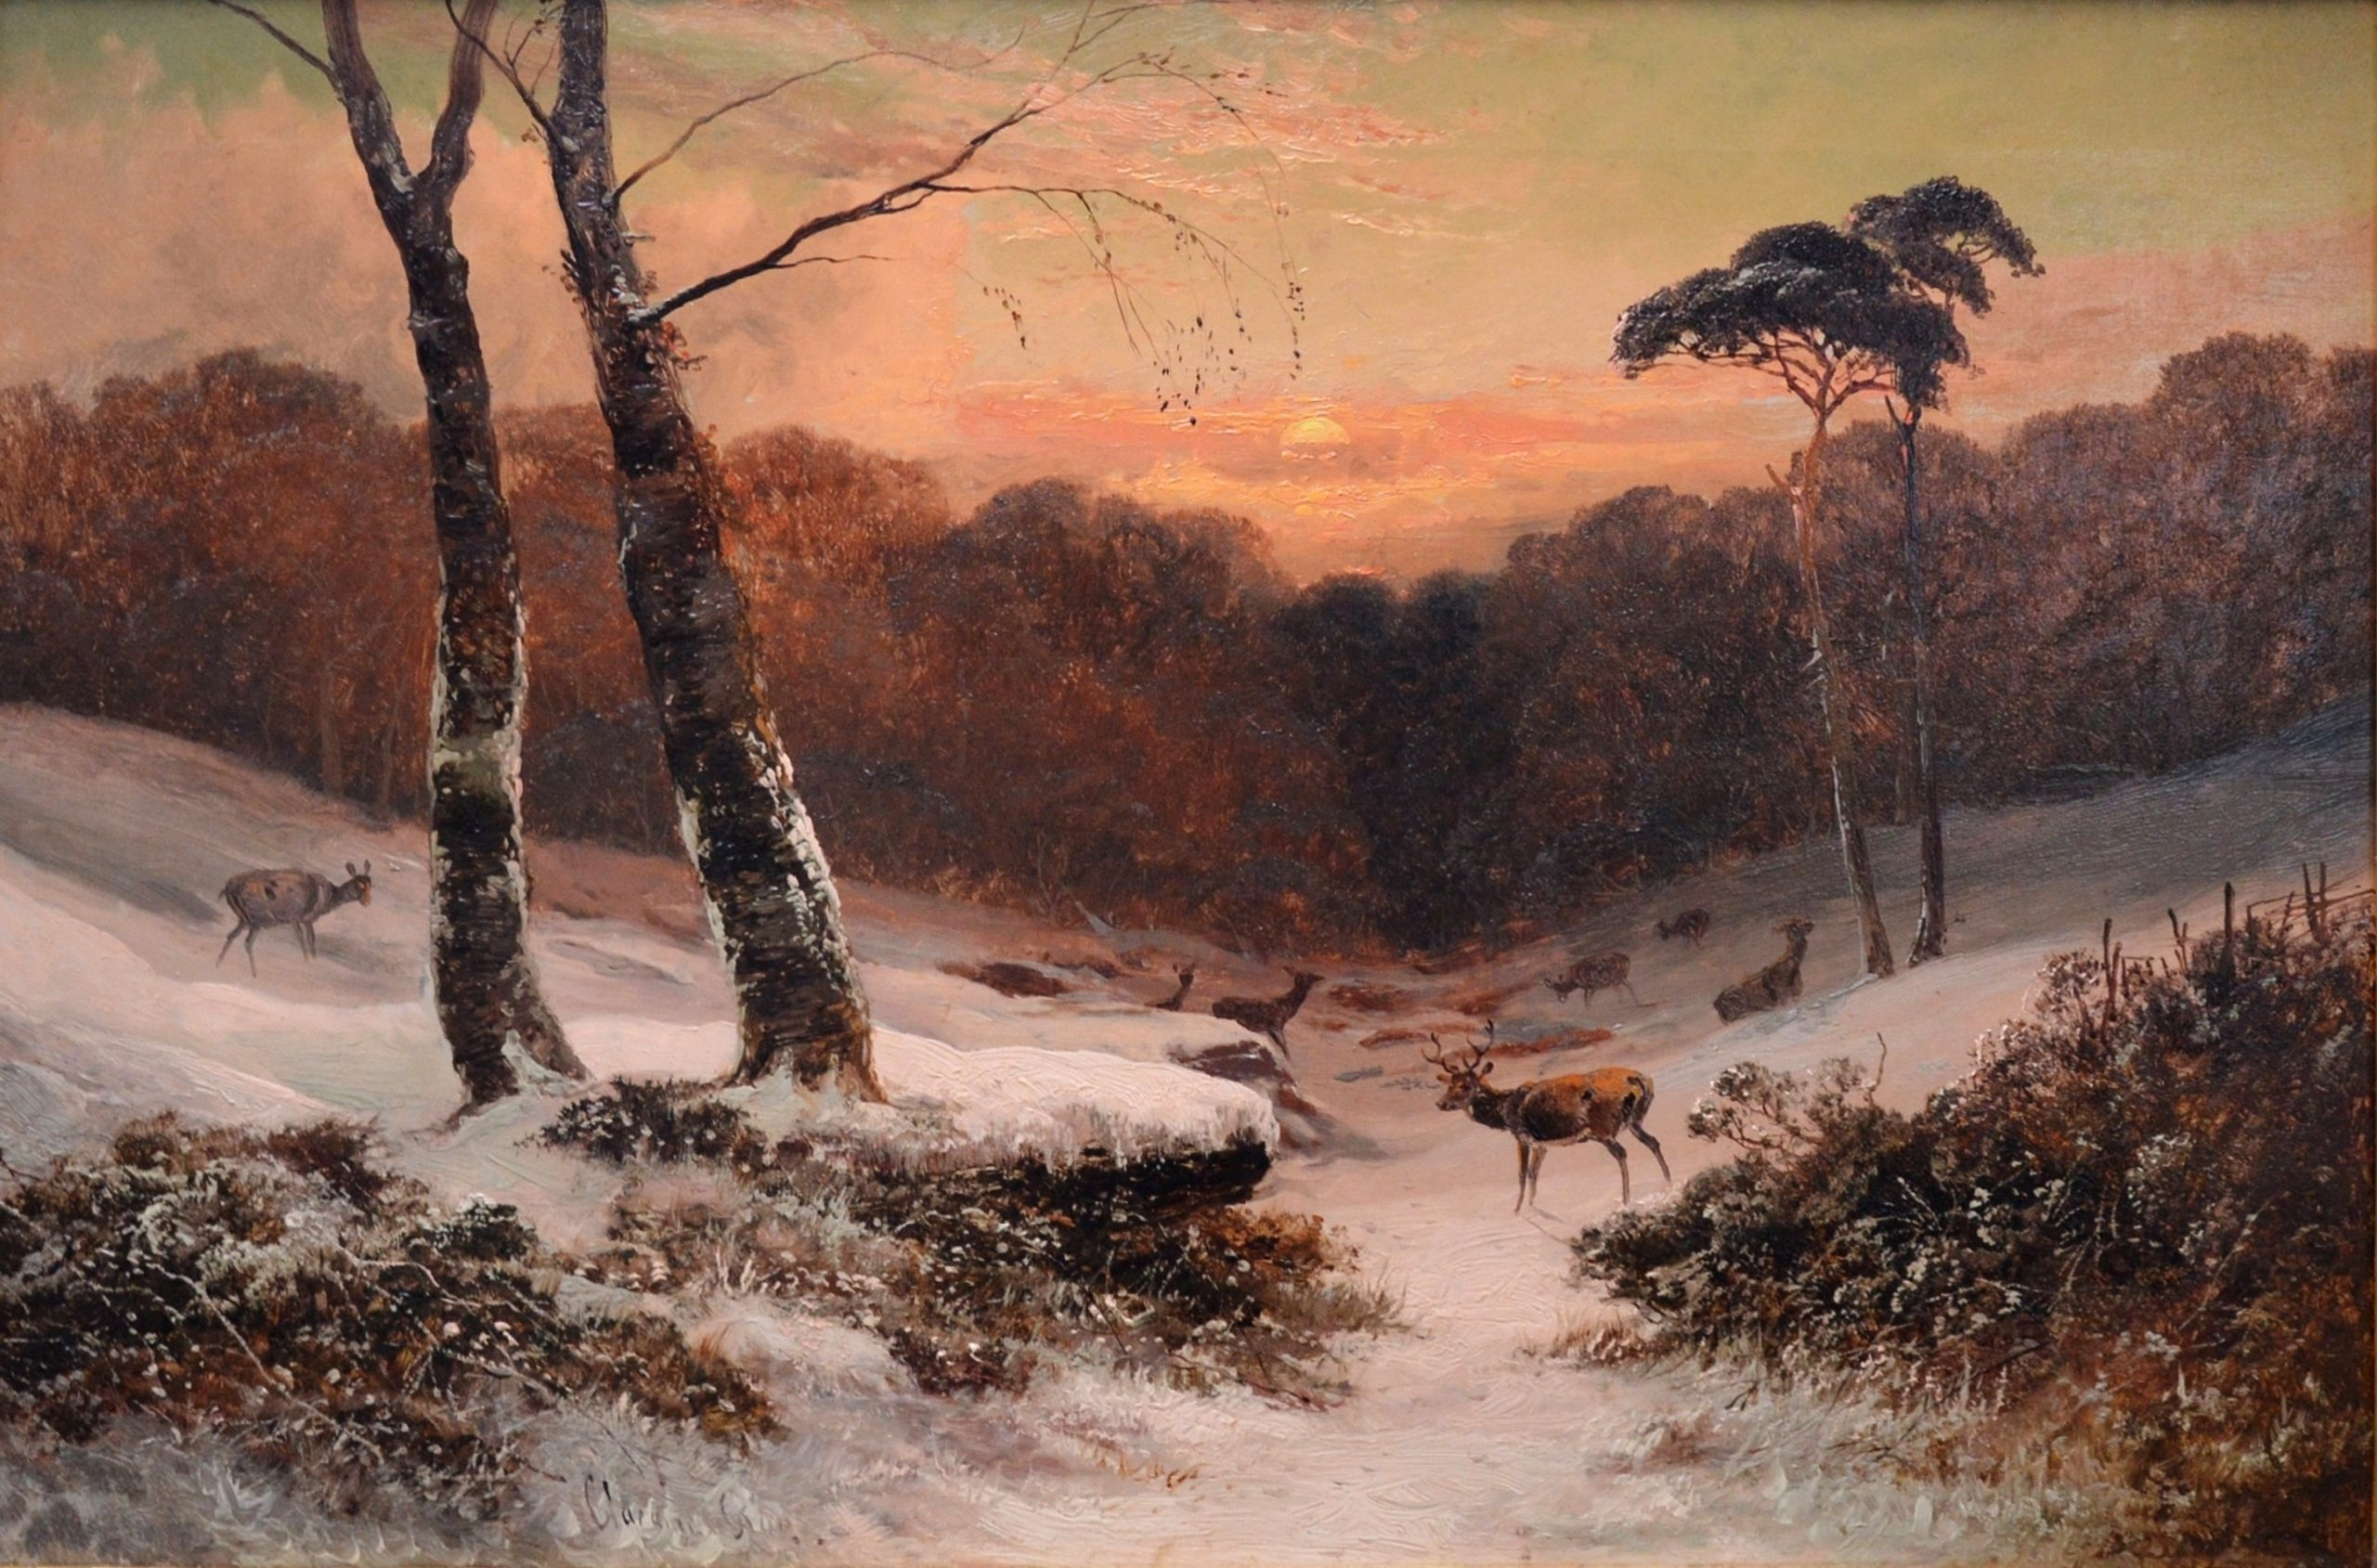 Winter Sunset - 19th Century Landscape Oil Painting Image